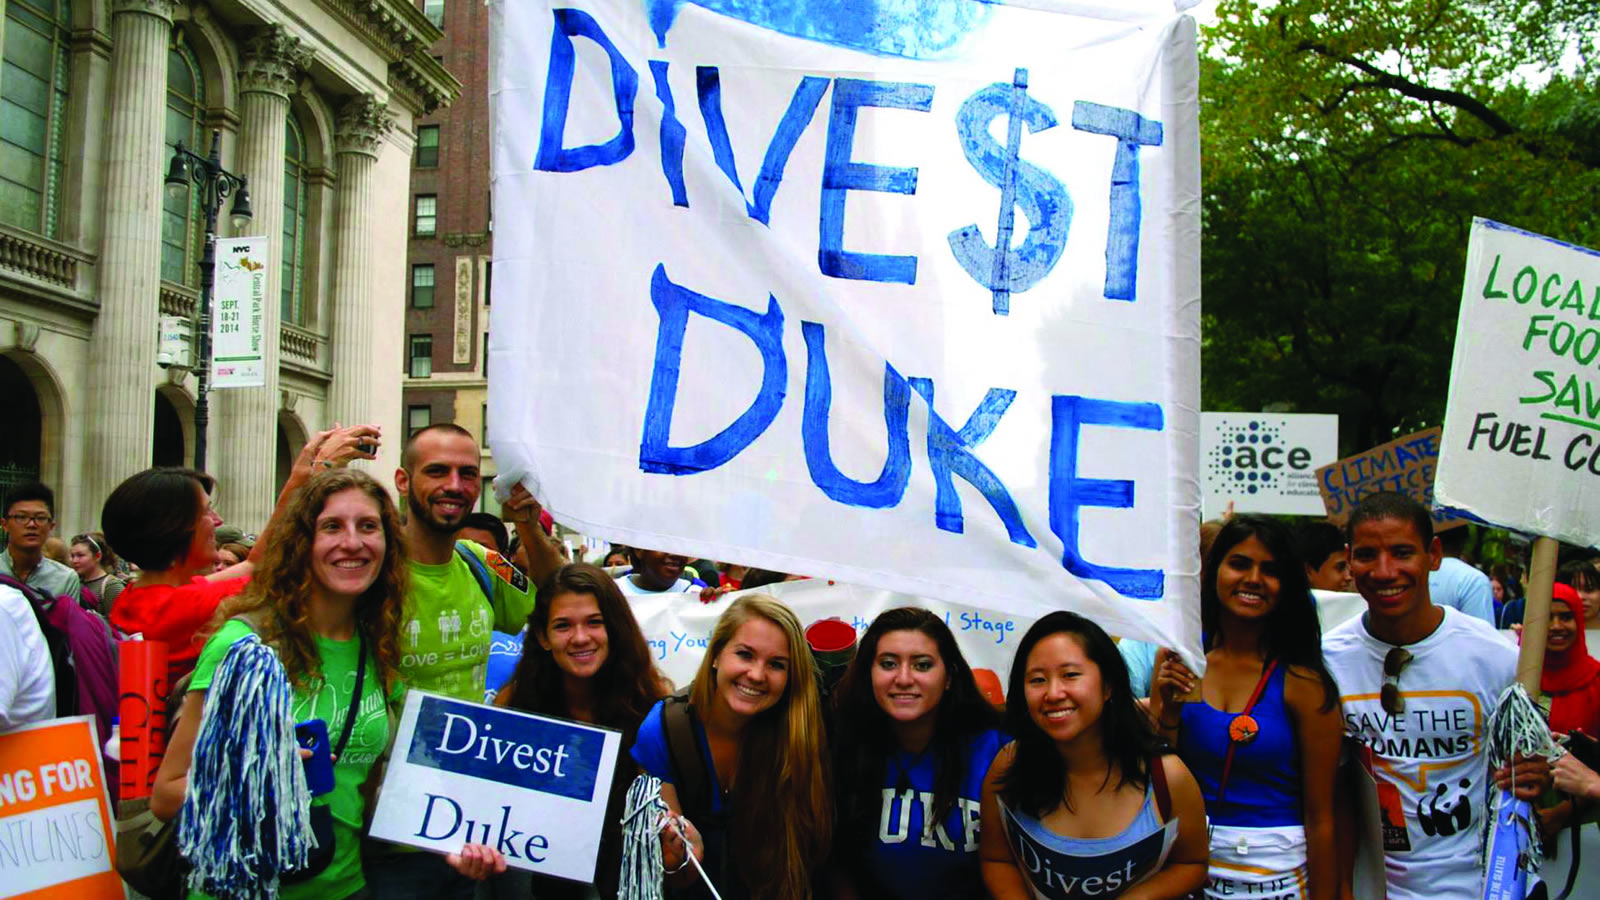 <h4>$6 TRILLION DIVESTED</h4><h5>In recent years, portfolios worth a combined $6 trillion have partly or completely divested from fossil fuels.</h5>